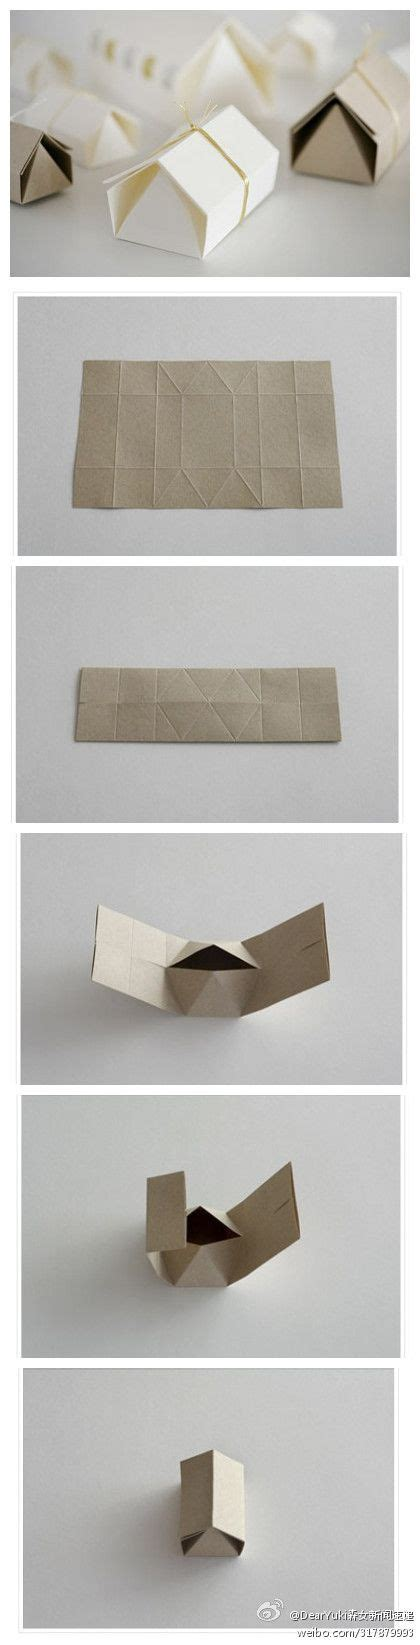 paper house origami origami paper house karbid boxes